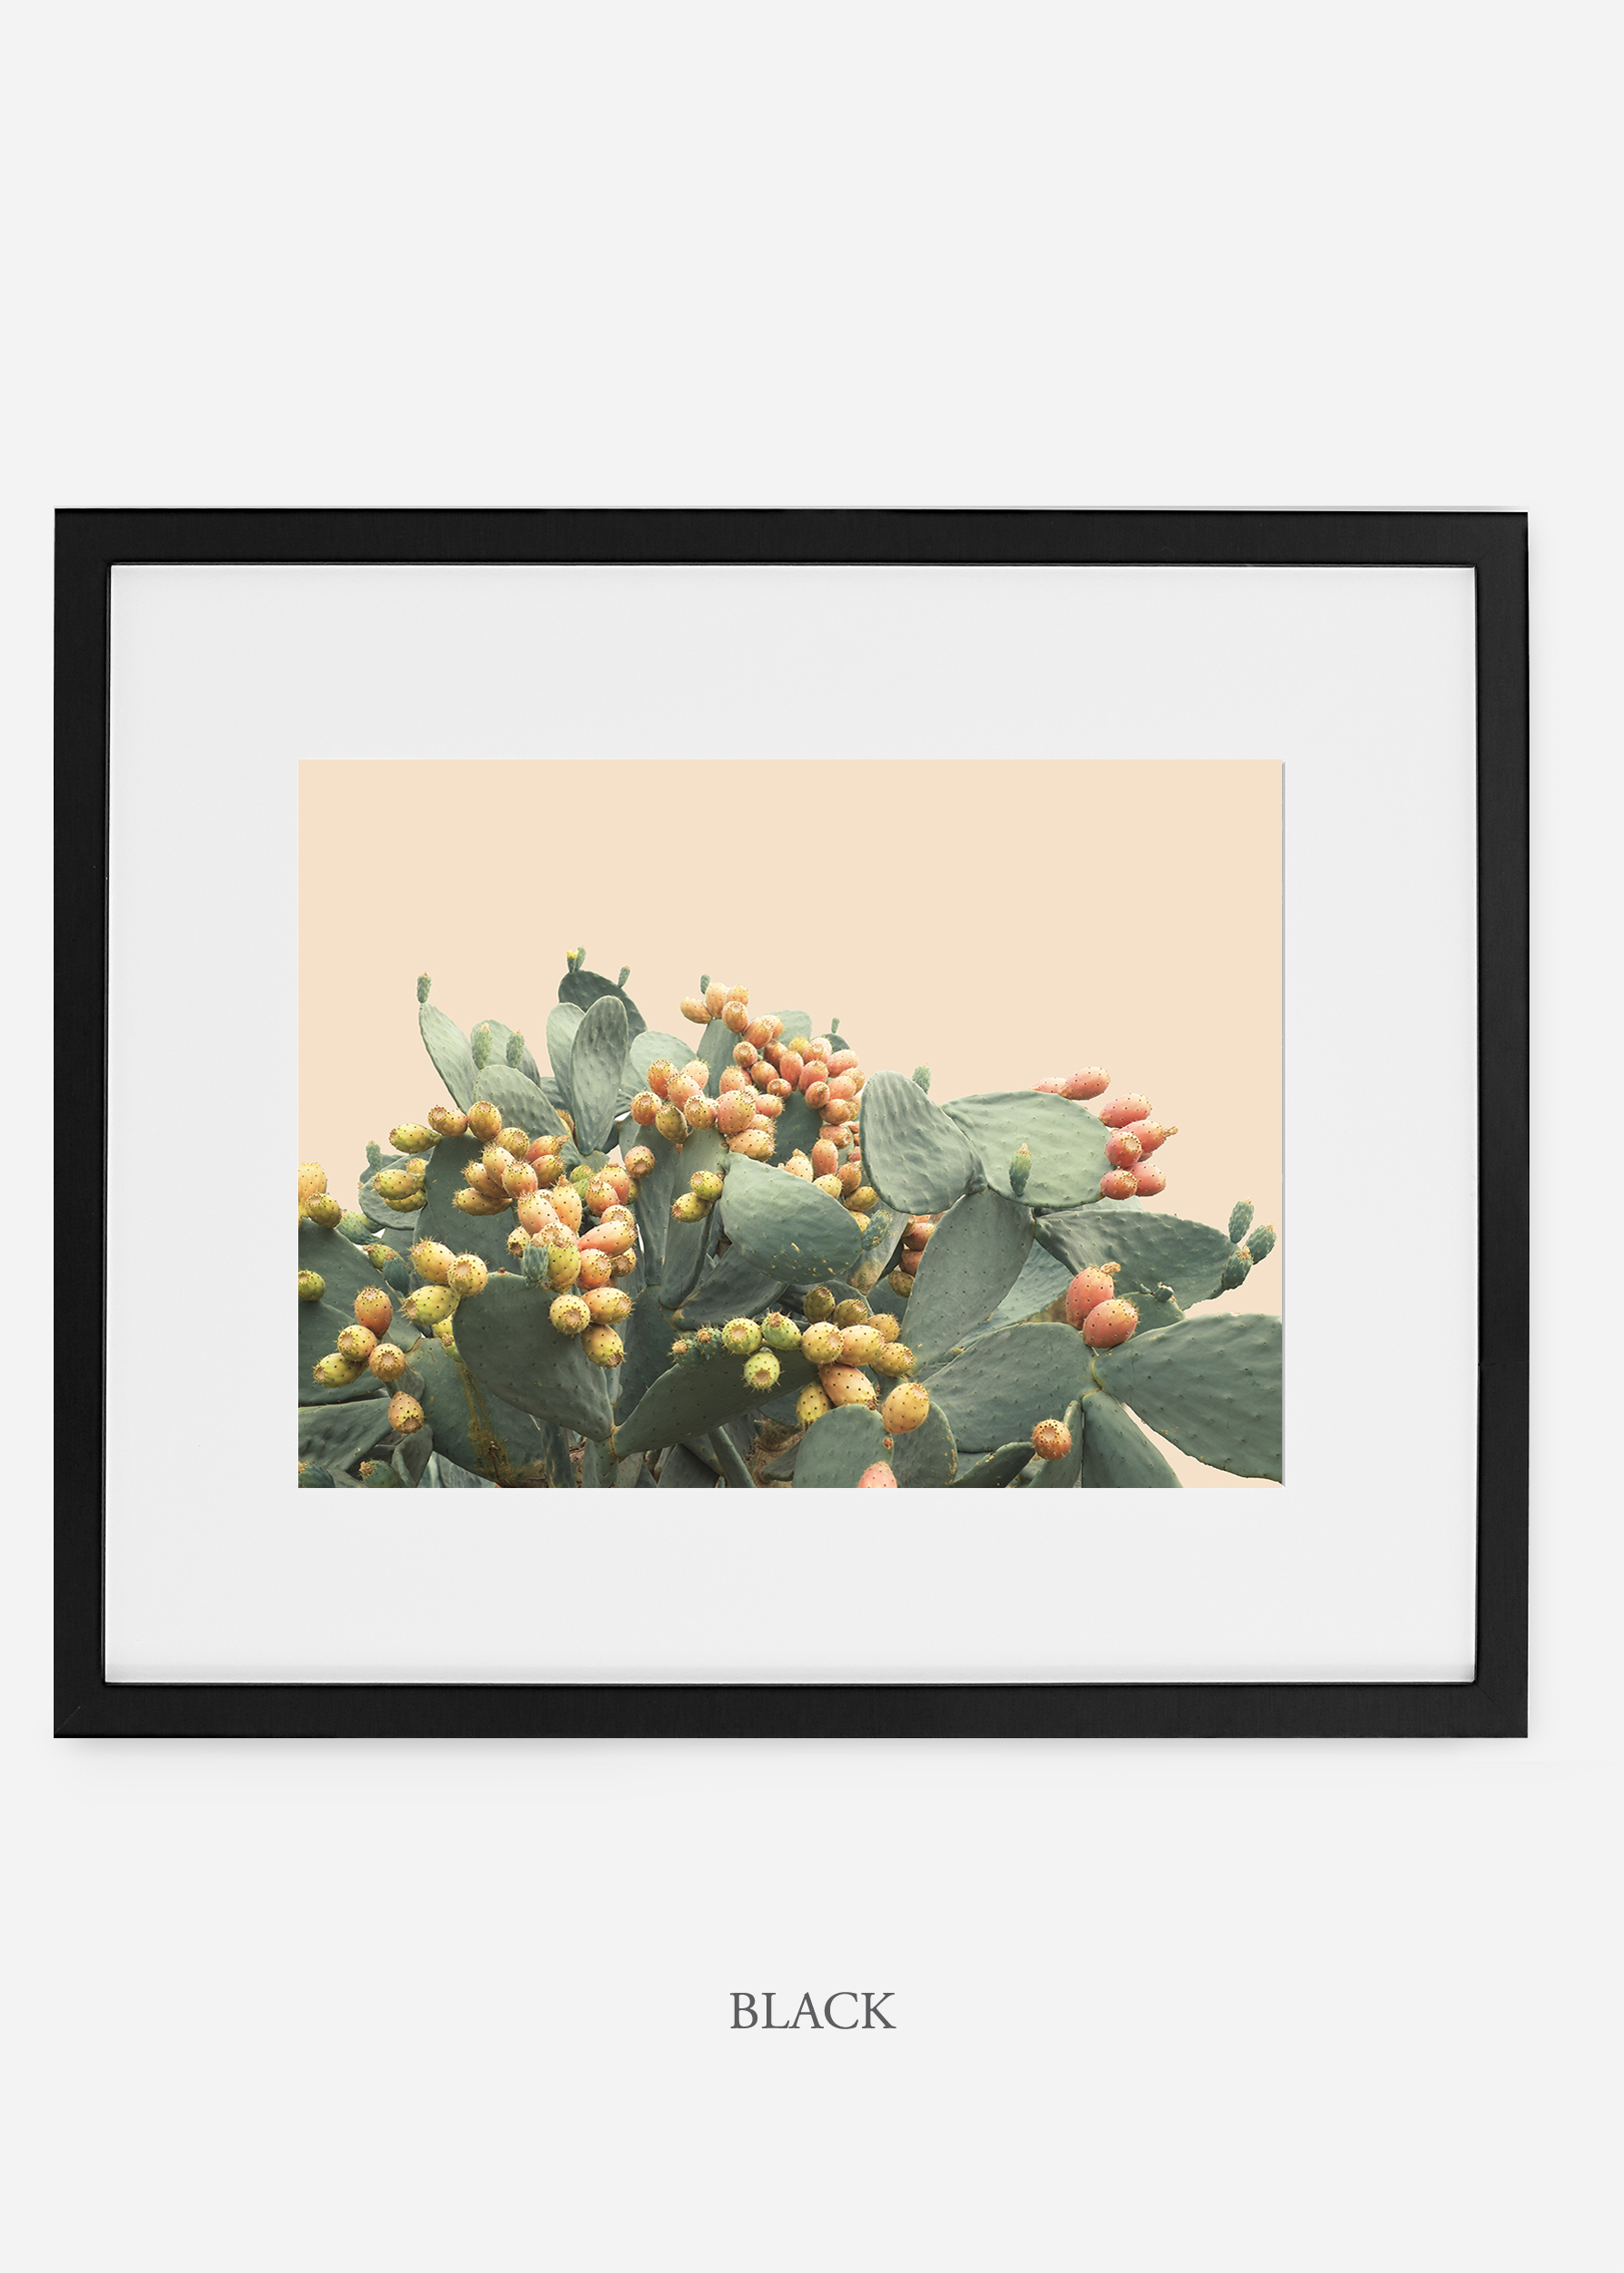 WilderCalifornia_interiordesign_art_blackframe_PricklyPearNo.1.jpg